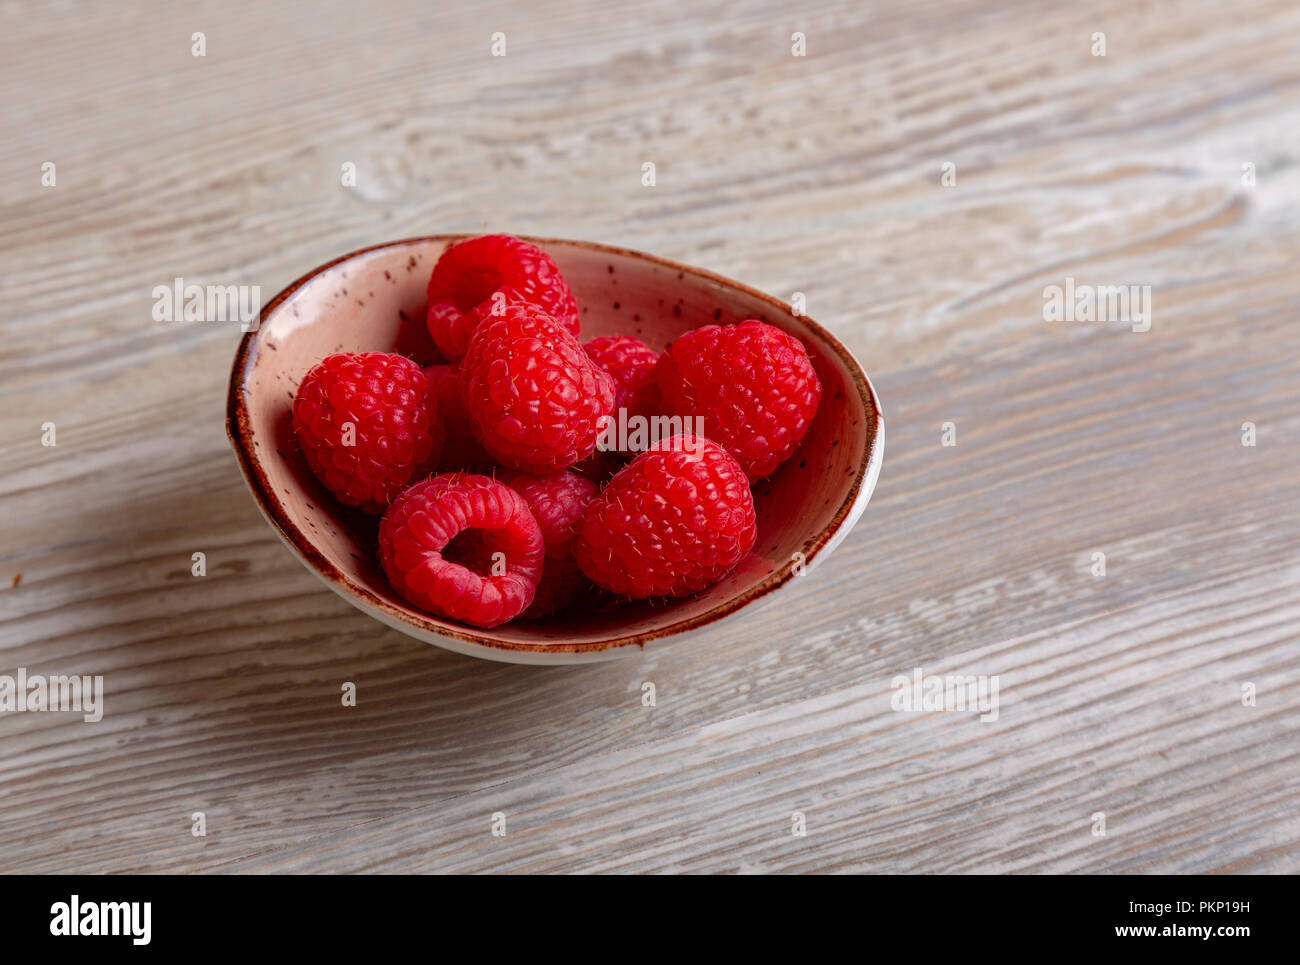 Ripe sweet raspberries in bowl on wooden table. Close up, top view, high resolution product - Stock Image